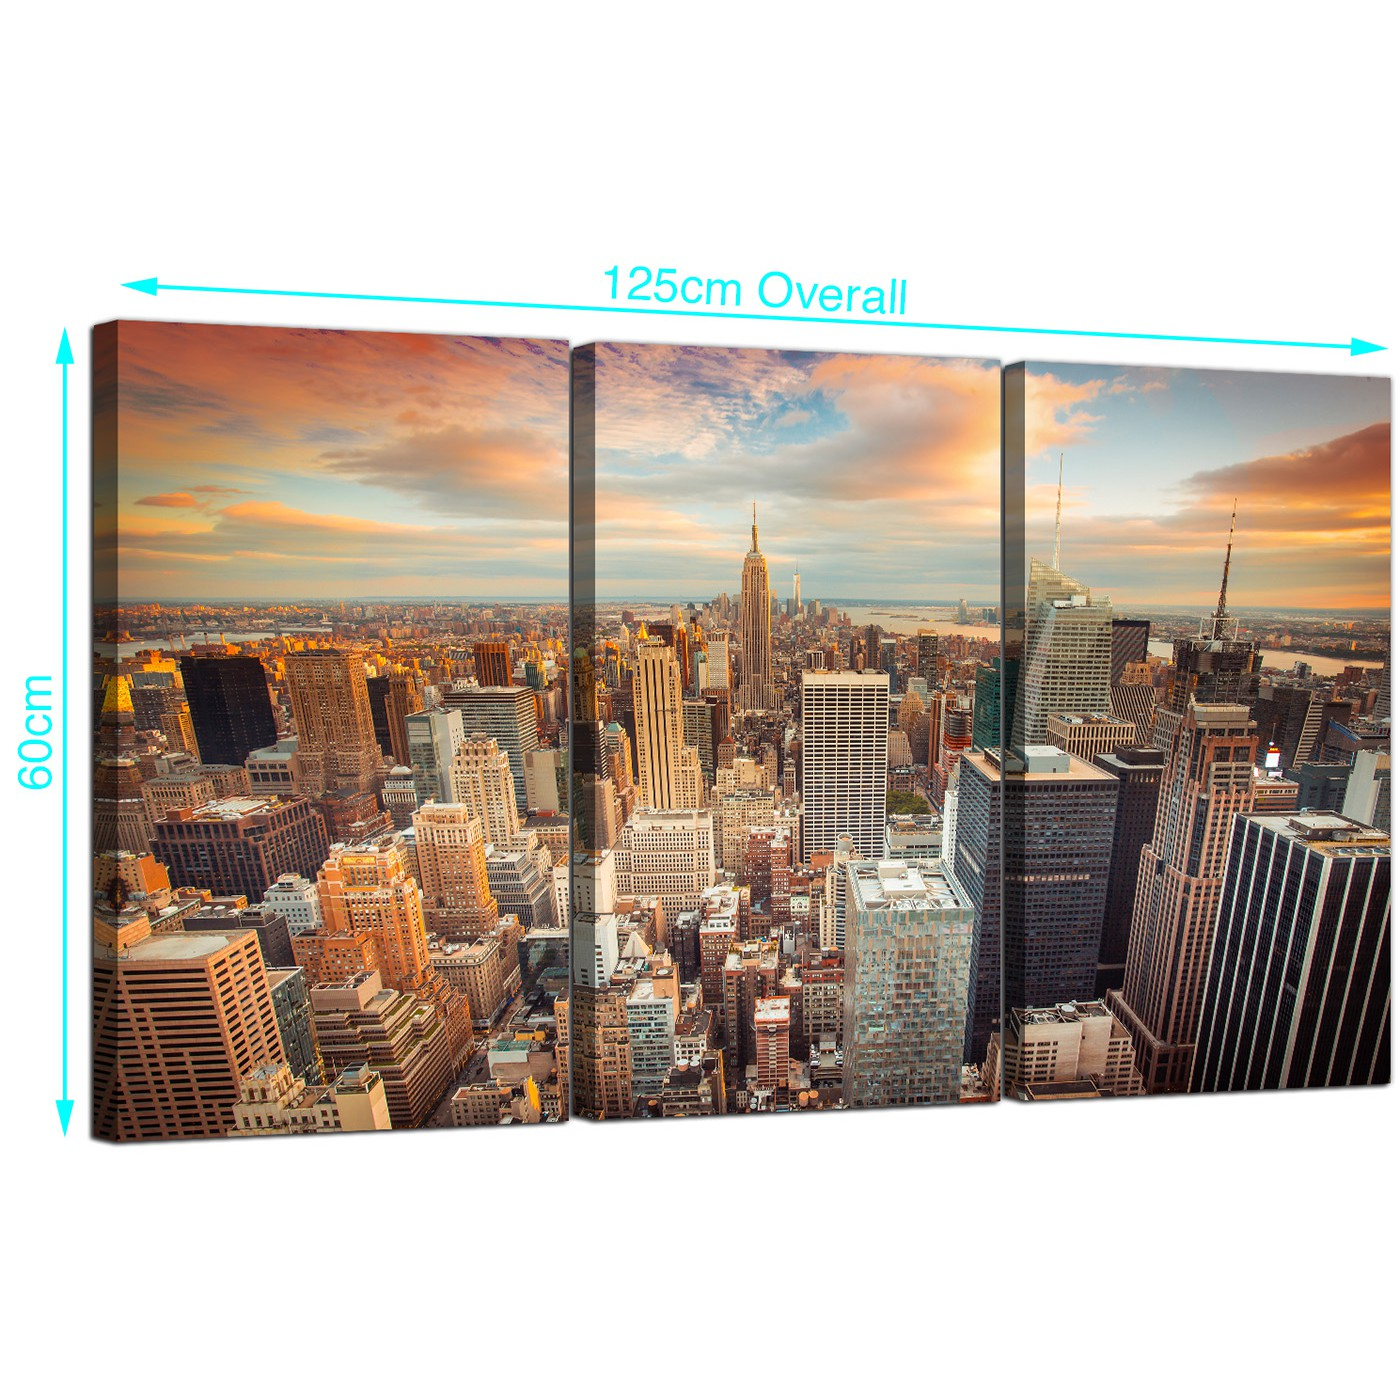 High Lights Of New York Skyline Canvas Wall Art: Cheap New York Skyline Canvas Wall Art 3 Panel For Your